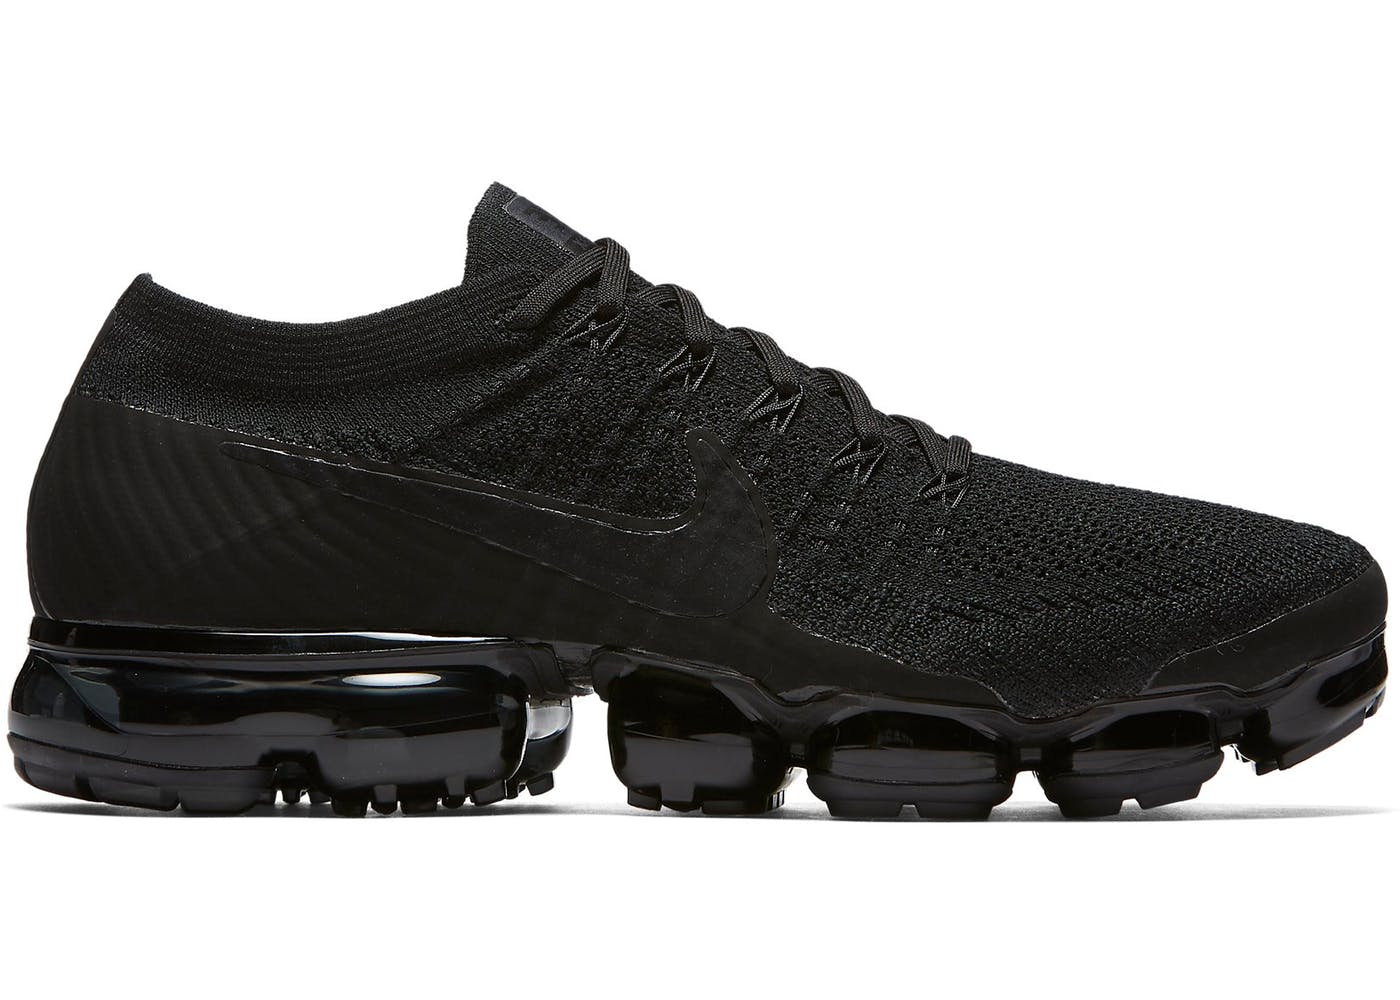 Nike Air VaporMax 'Black/Anthracite'. Nike Launch DK